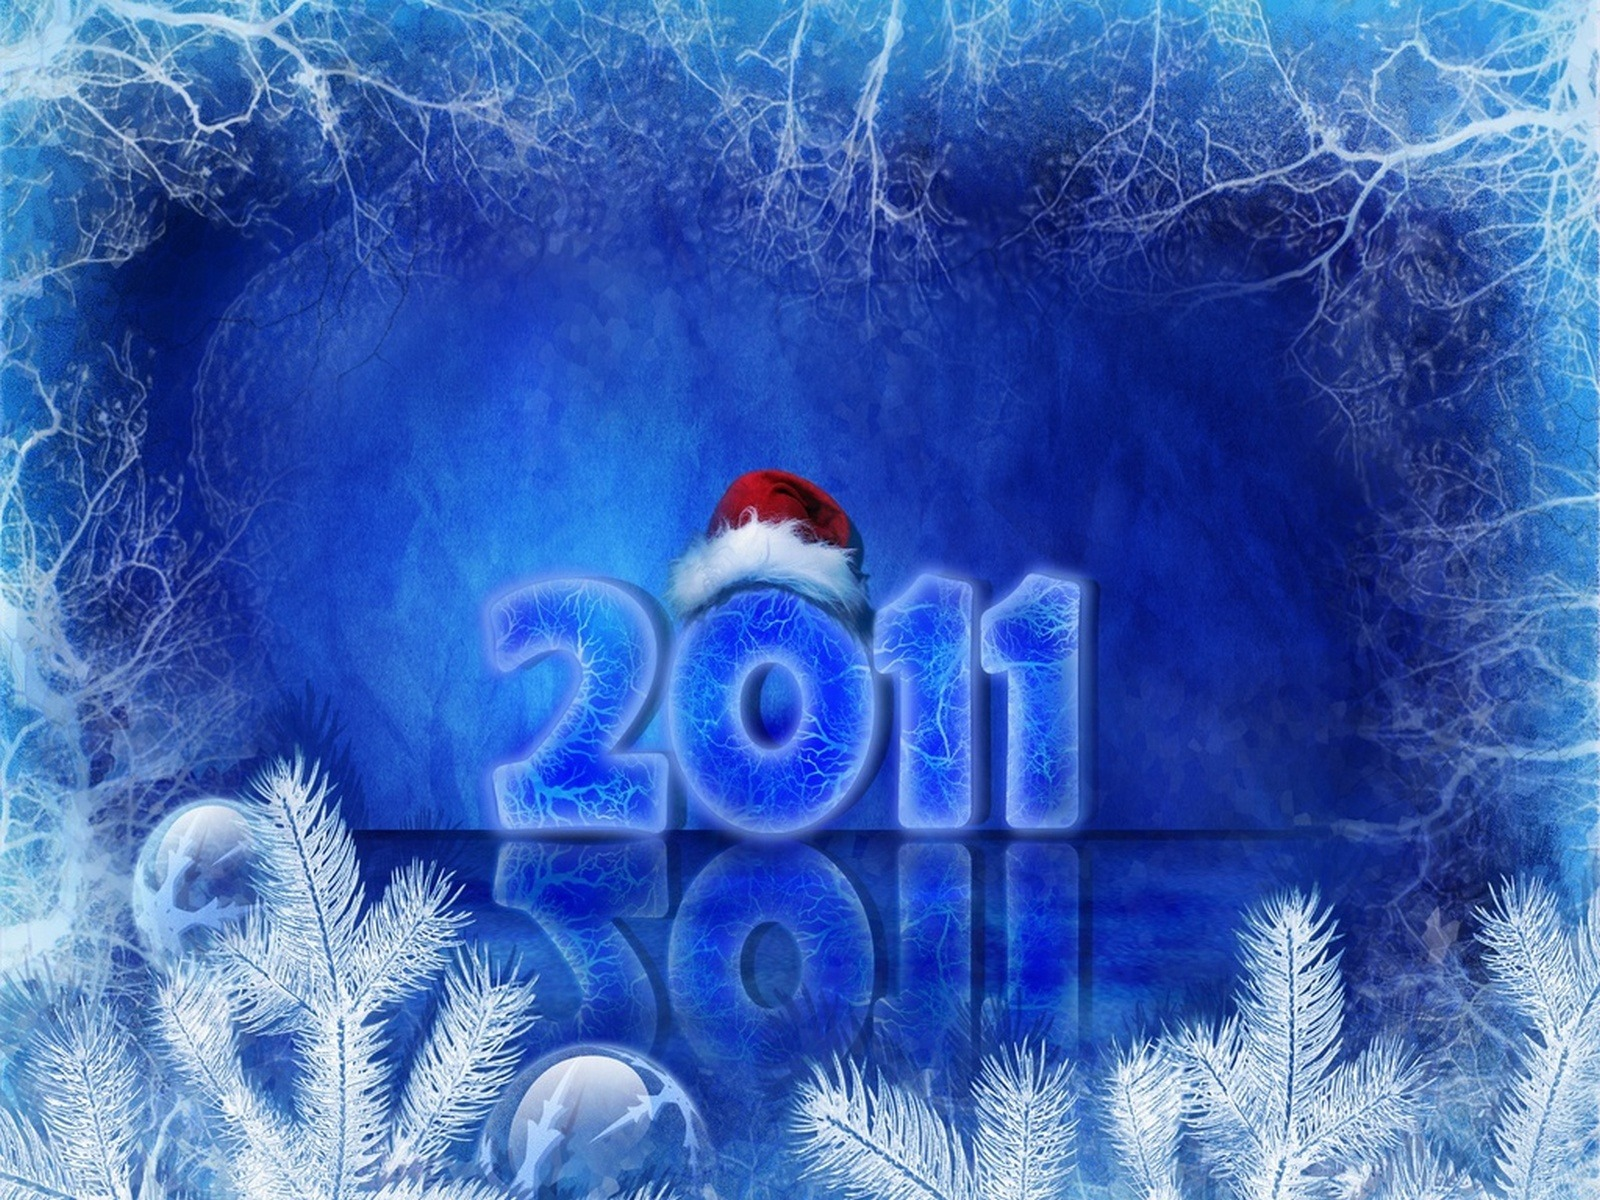 Christmas Wallpaper 2011